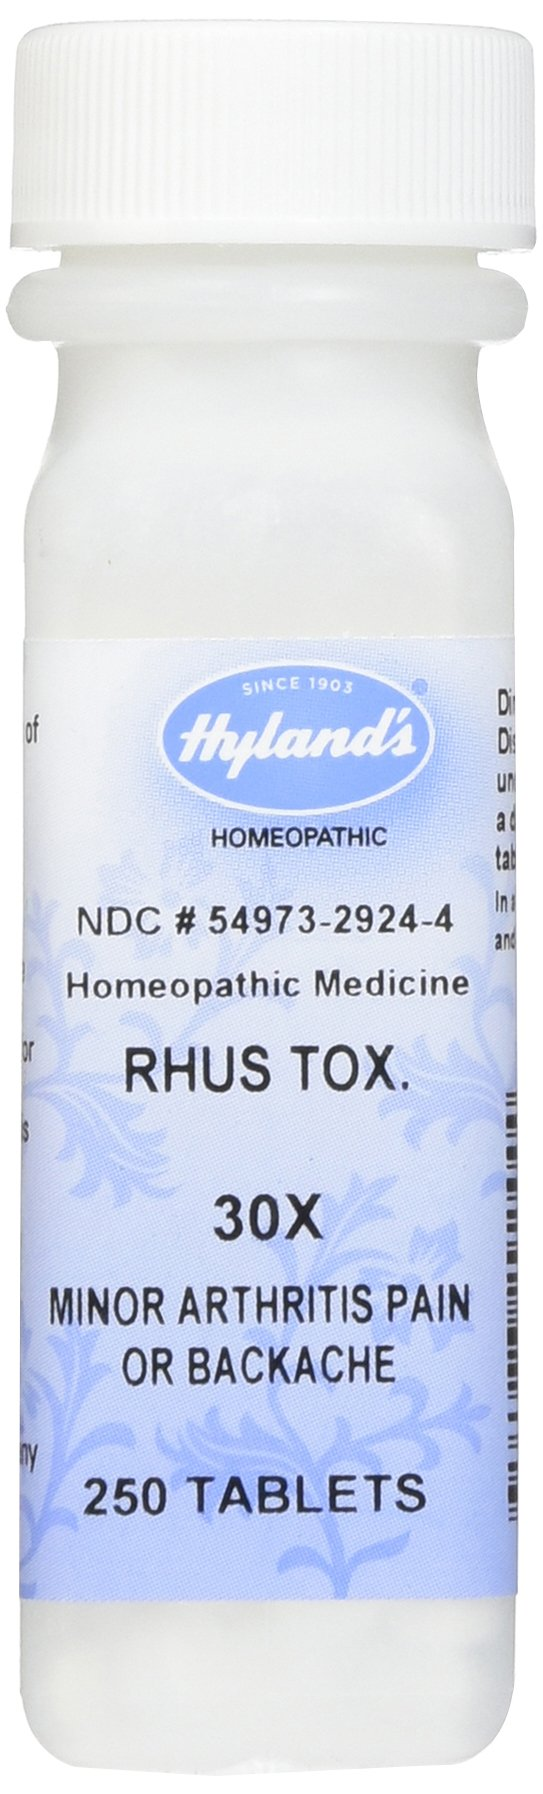 Back Pain and Minor Arthritis Relief, Natural Remedy by Hyland's, Rhus Tox. 30X Tablets, 250 Count